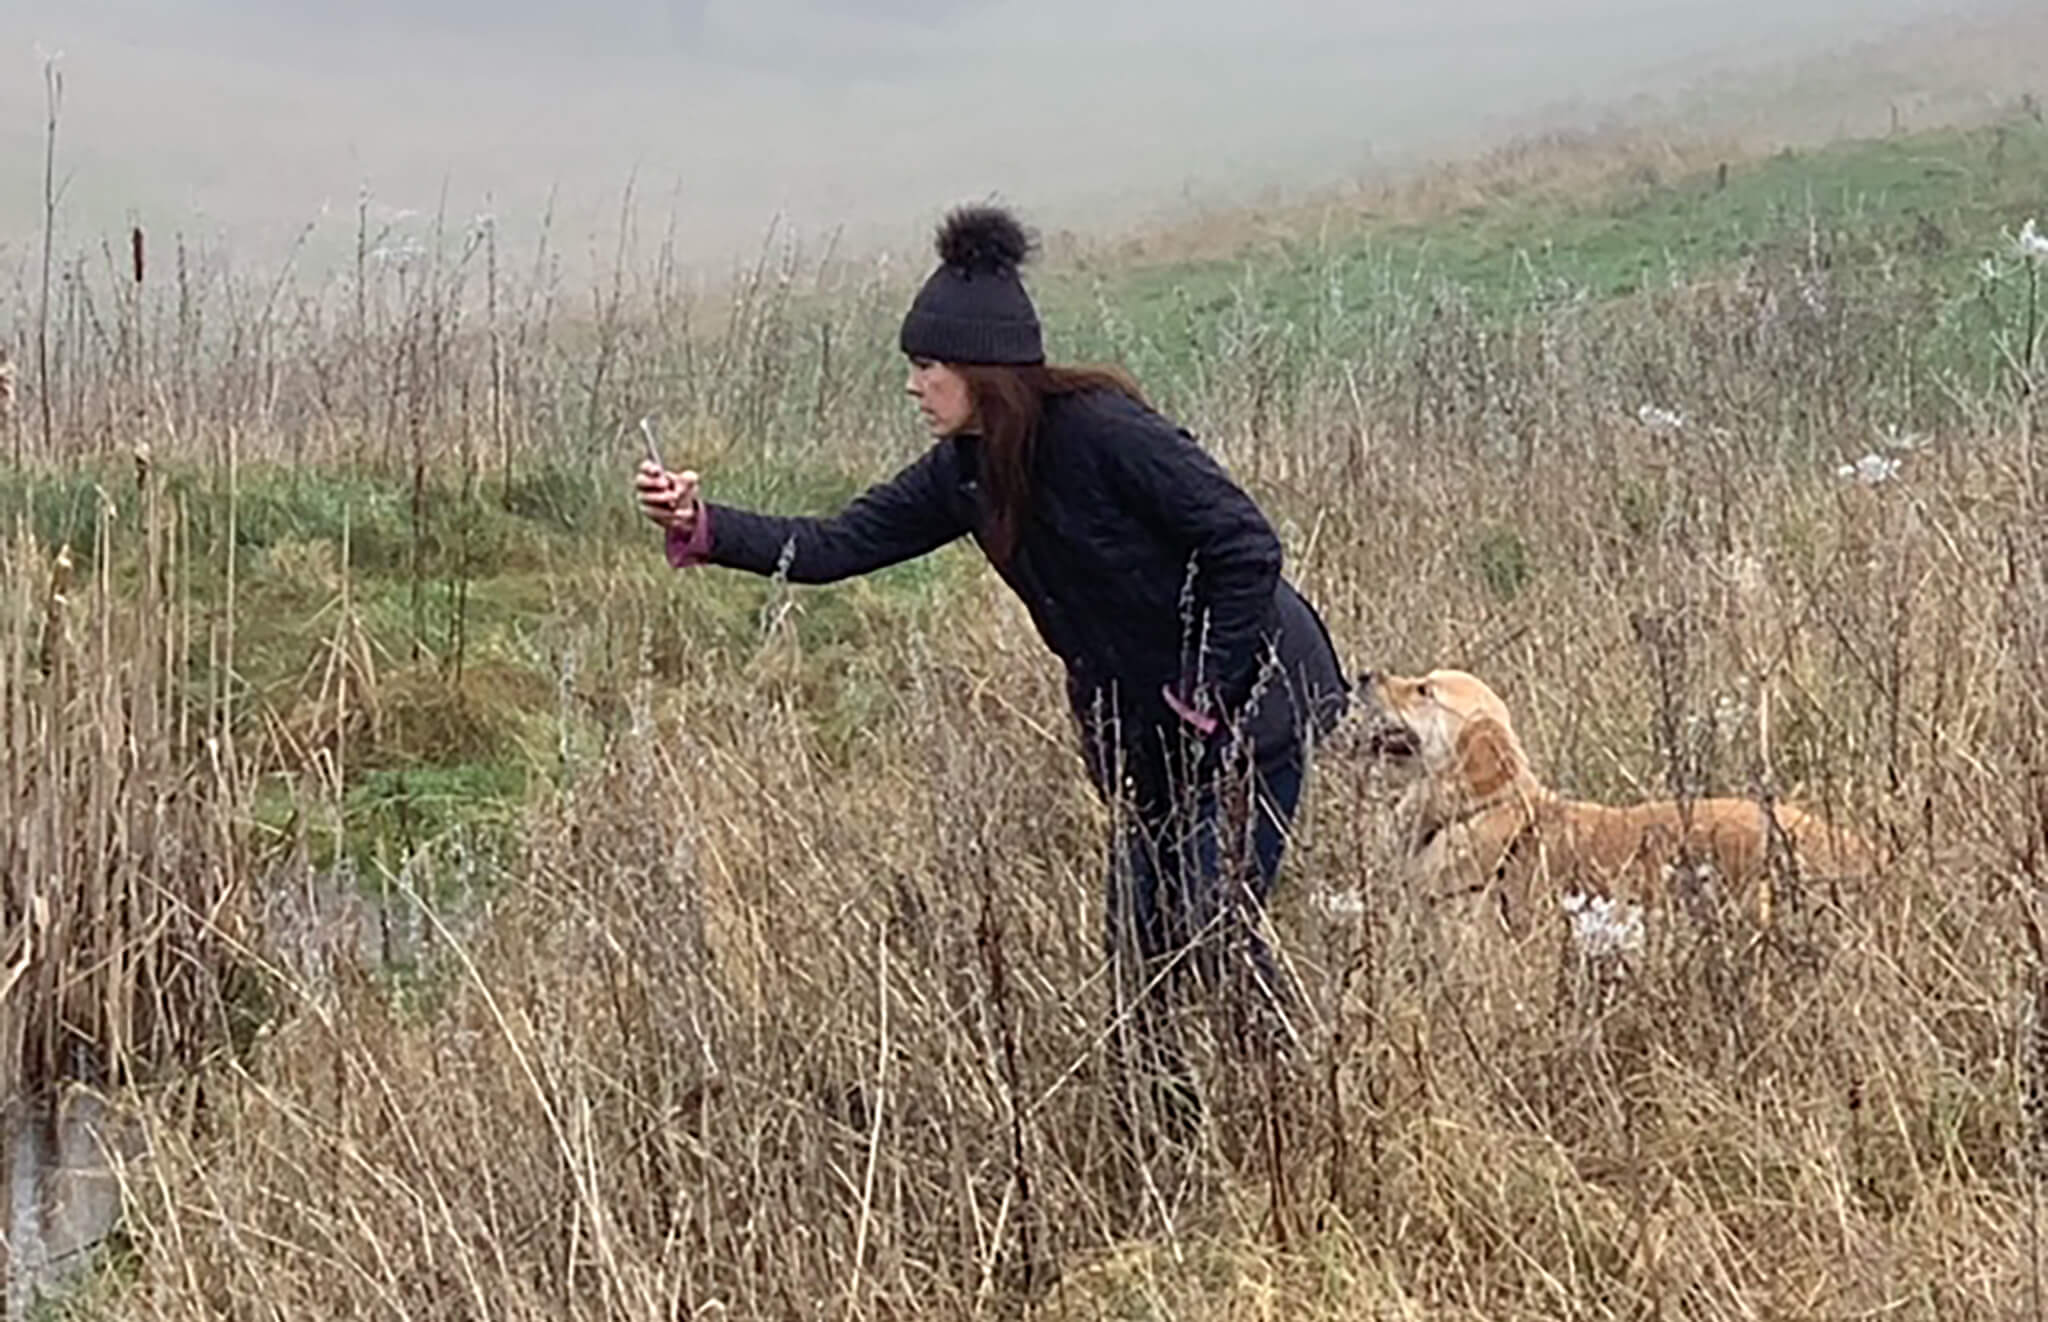 Amanda Gosse and Teddy the golden retriever photographing local wildlife for art reference